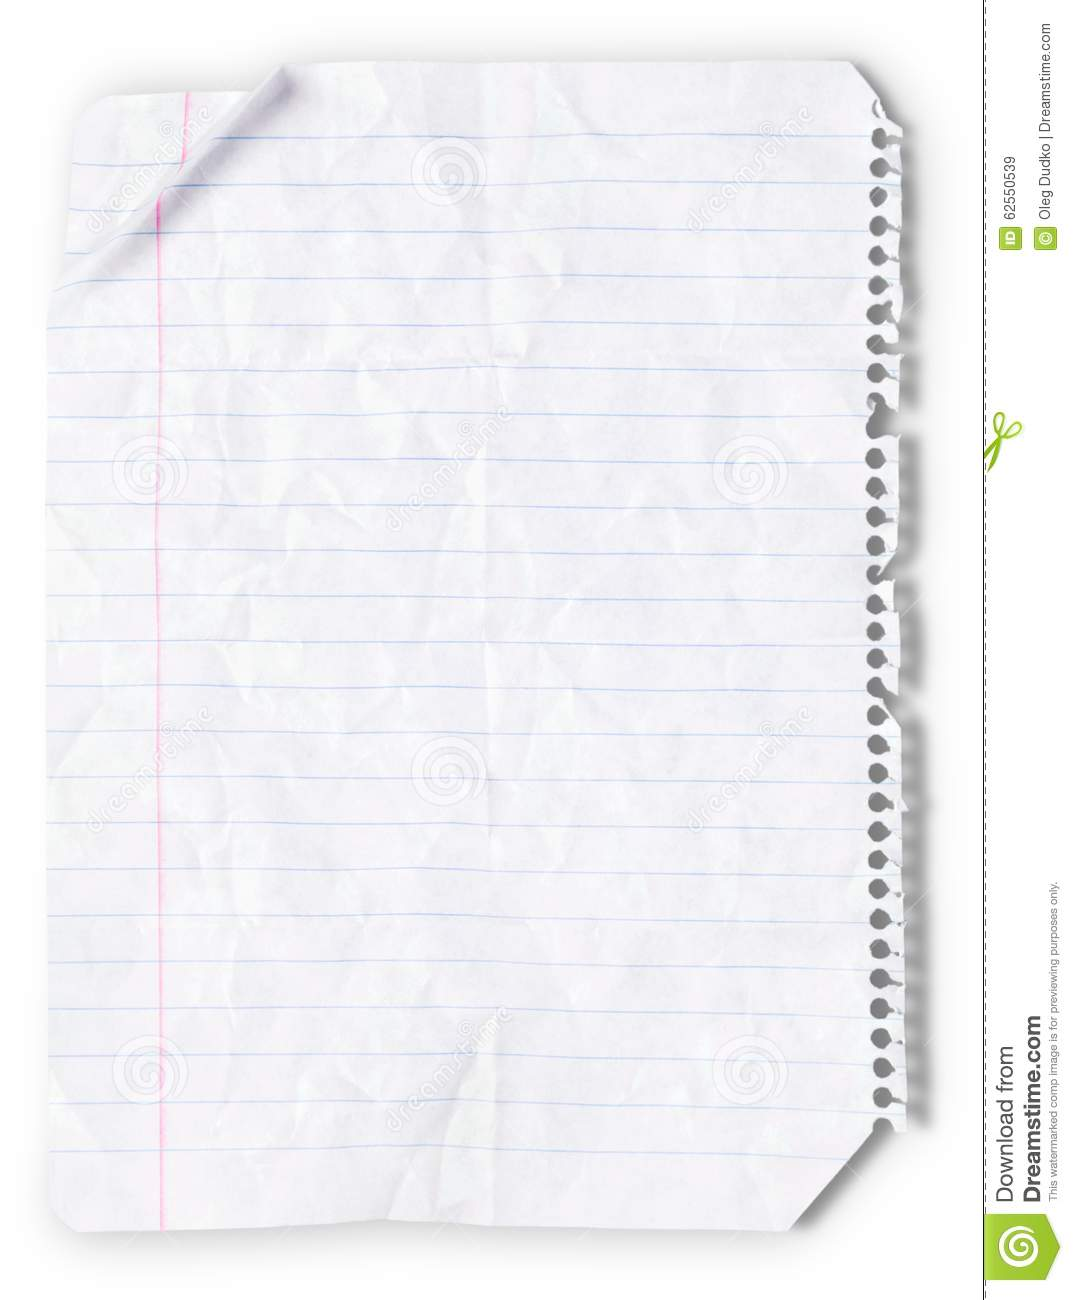 Download Lined Paper stock image. Image of image, blank, crumpled - 62550539